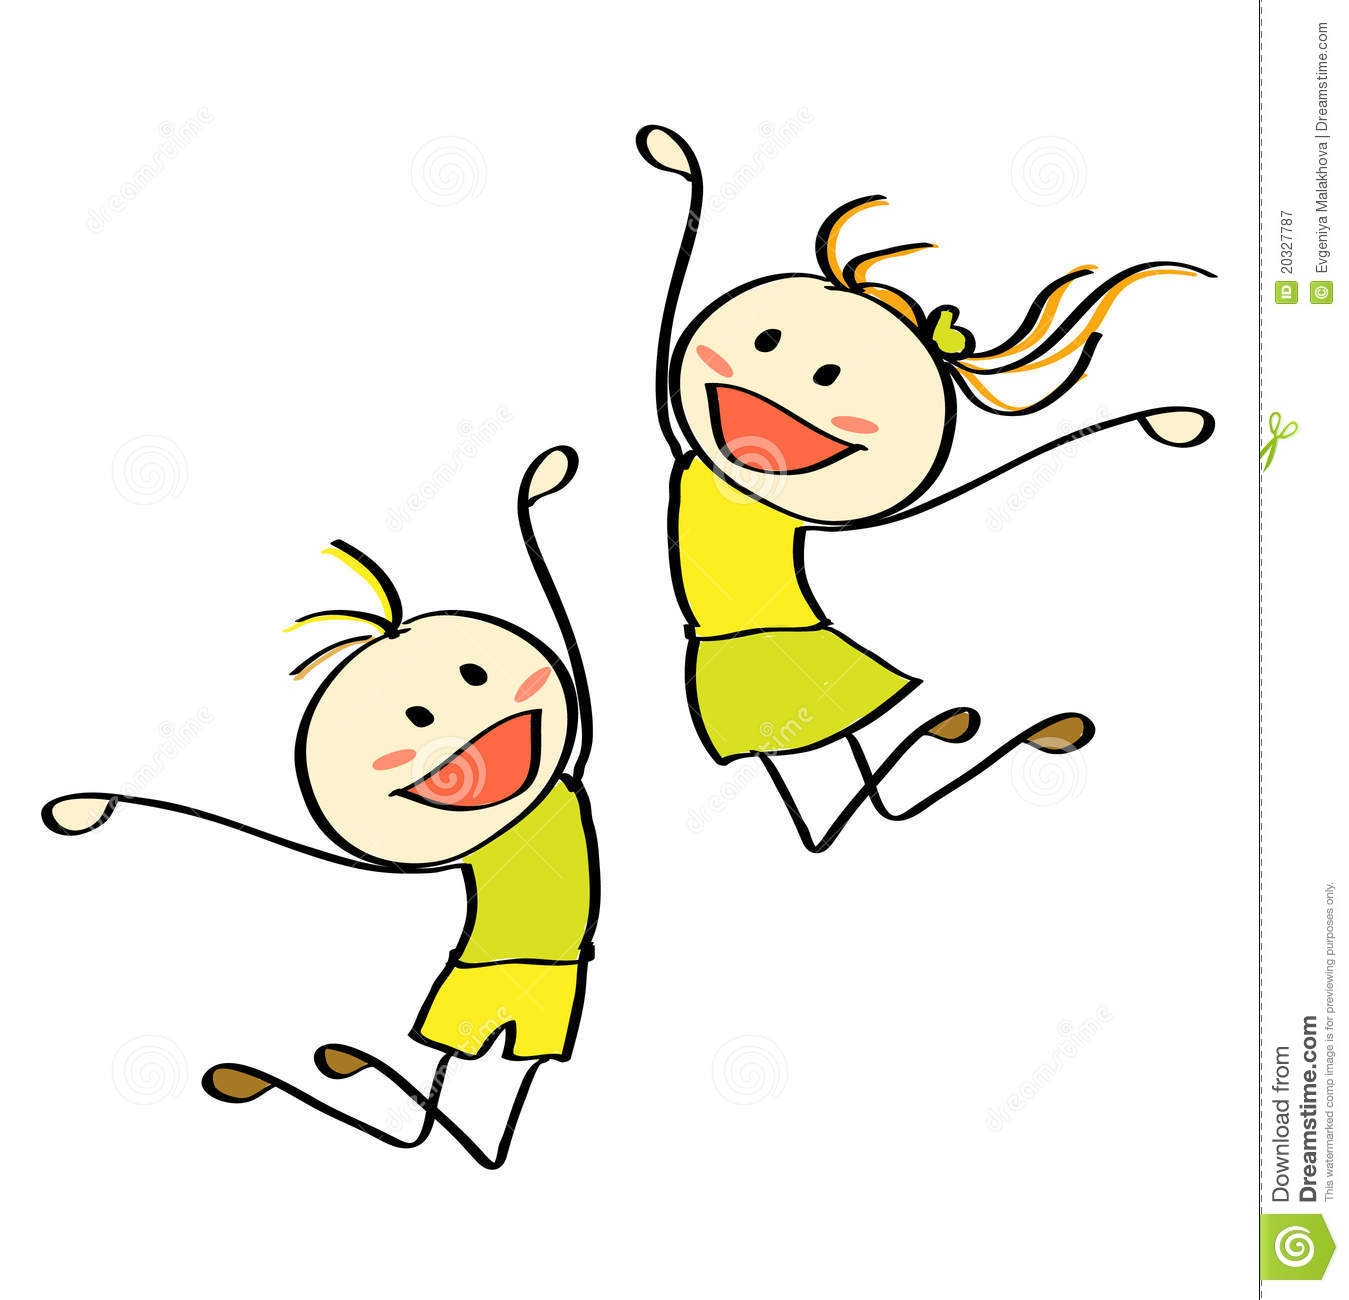 Kids jumping clipart.